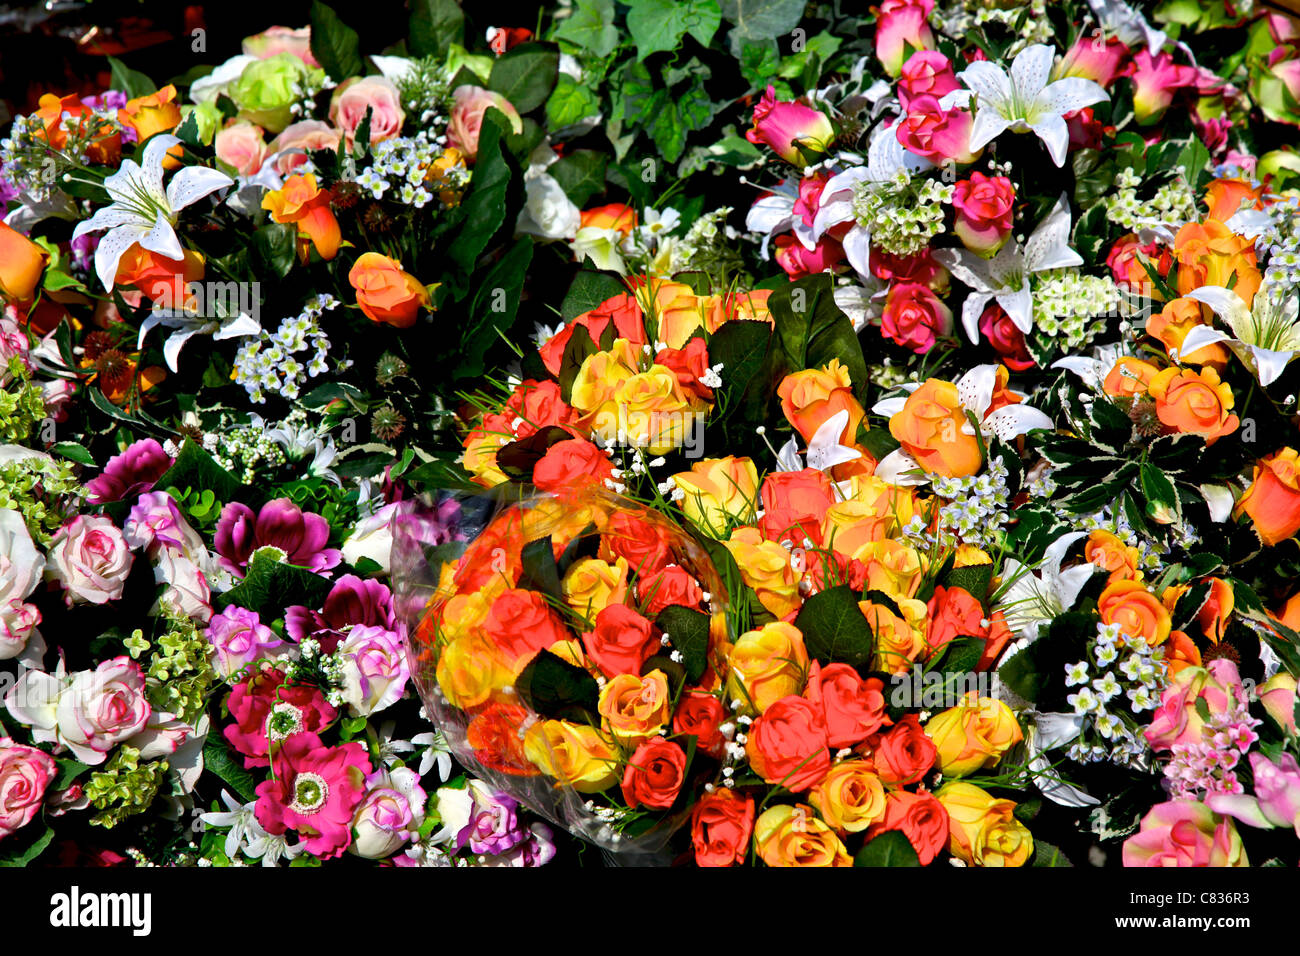 Lots of different flowers on market with some arranged in a bouquet lots of different flowers on market with some arranged in a bouquet izmirmasajfo Gallery